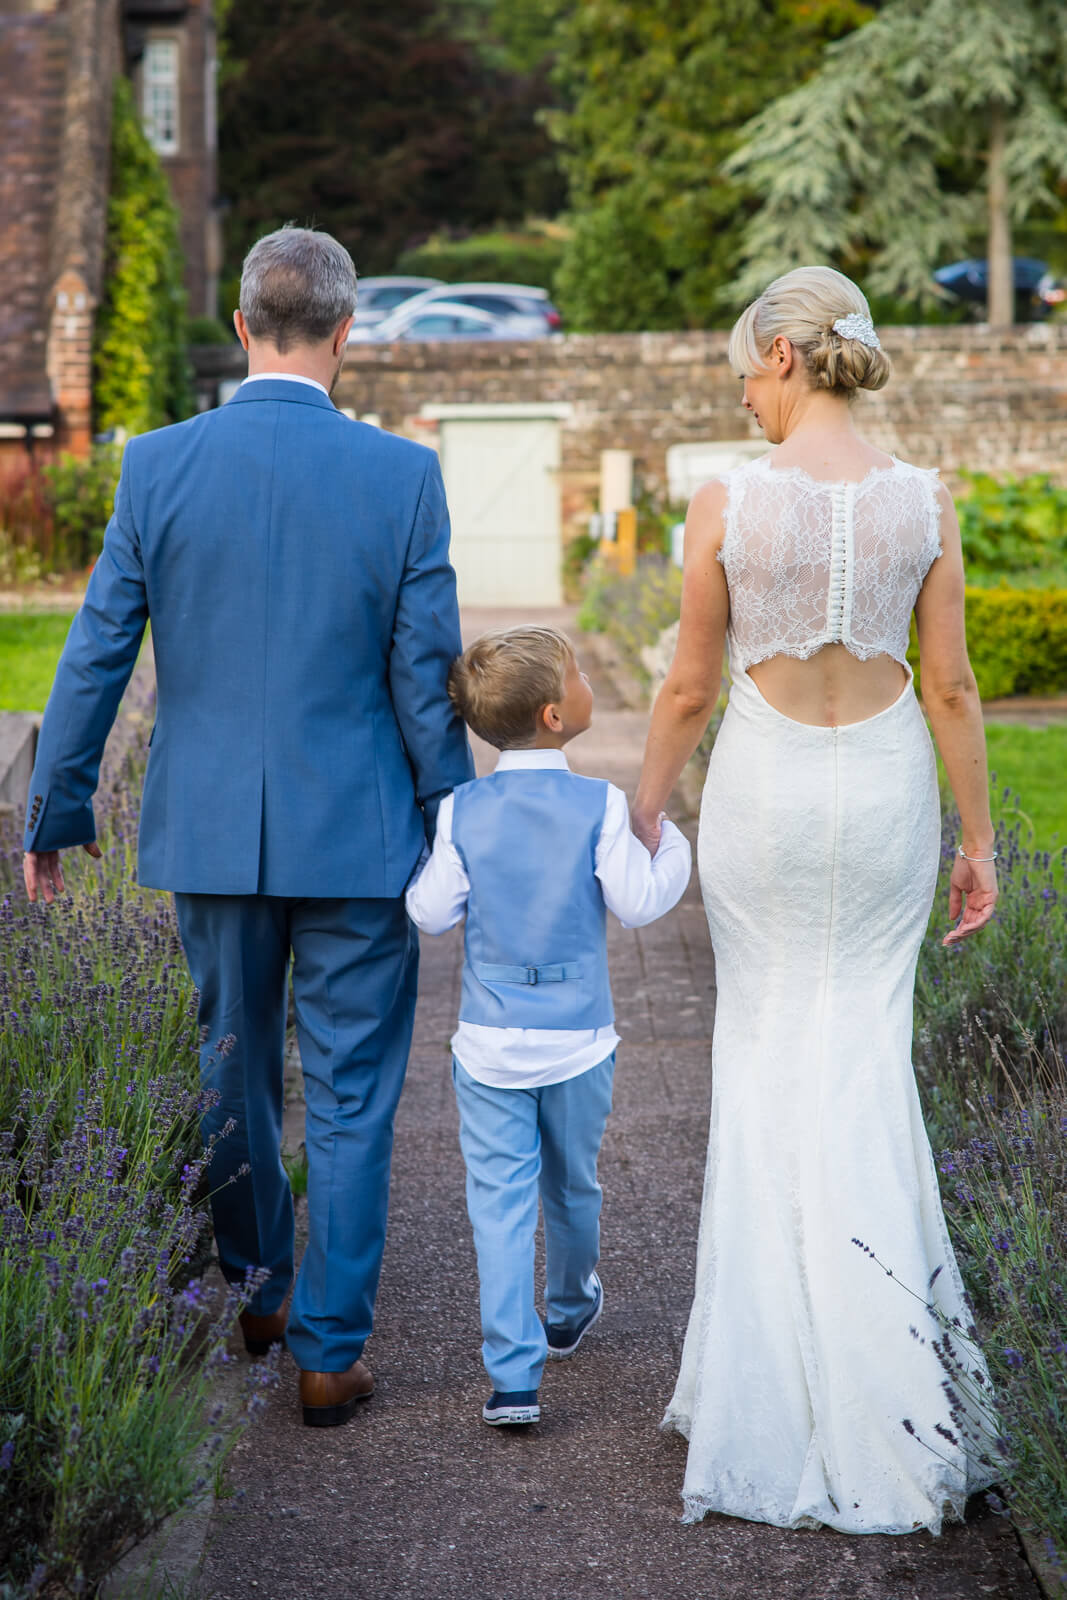 Bride and groom walk away through a lavender garden with son between them